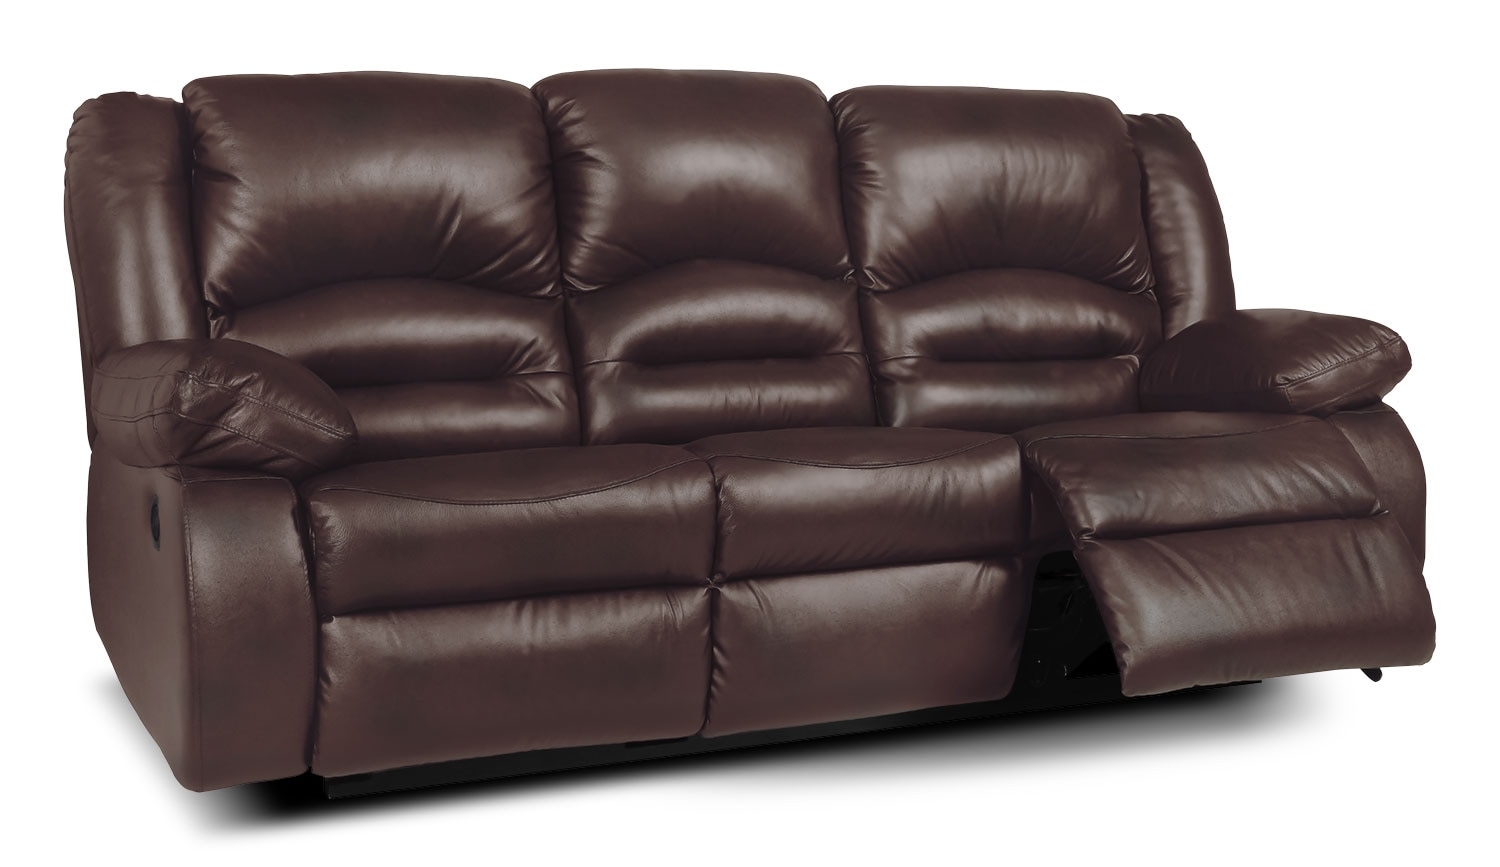 Toreno genuine leather reclining sofa brown the brick for Real leather sofas